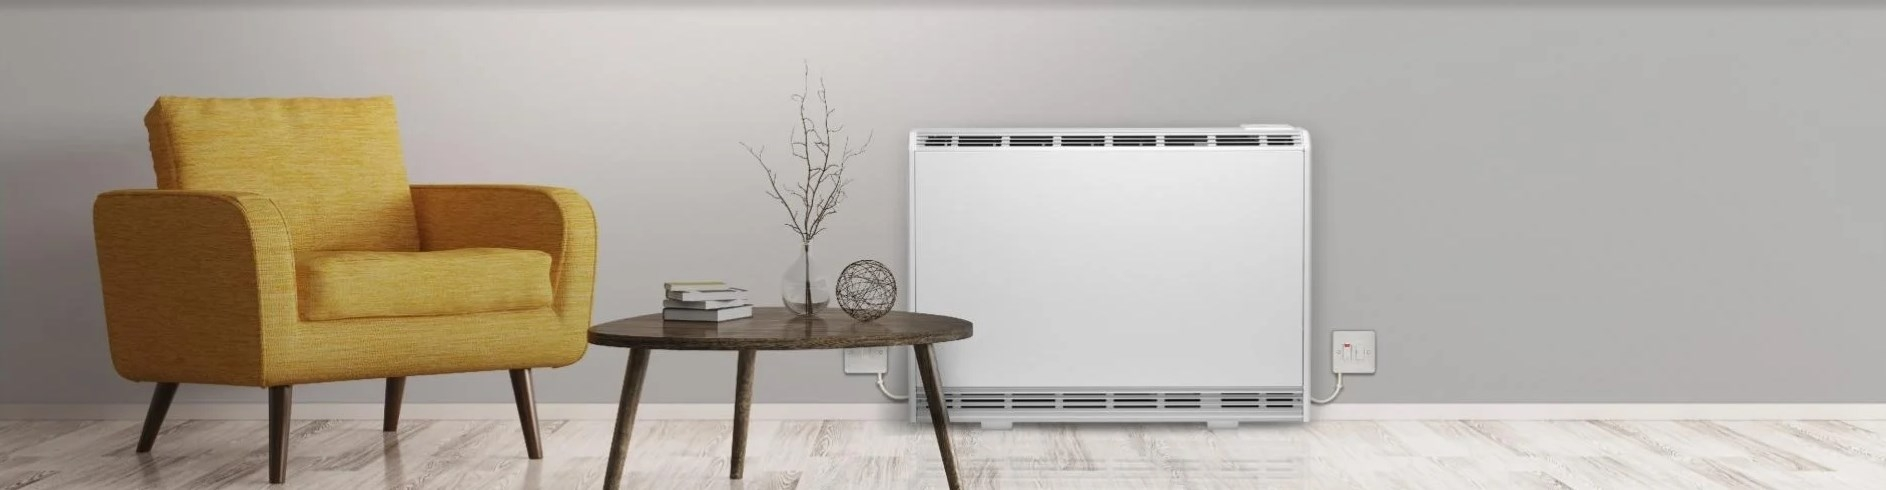 Alert Electrical - Creda Electric Storage Heaters